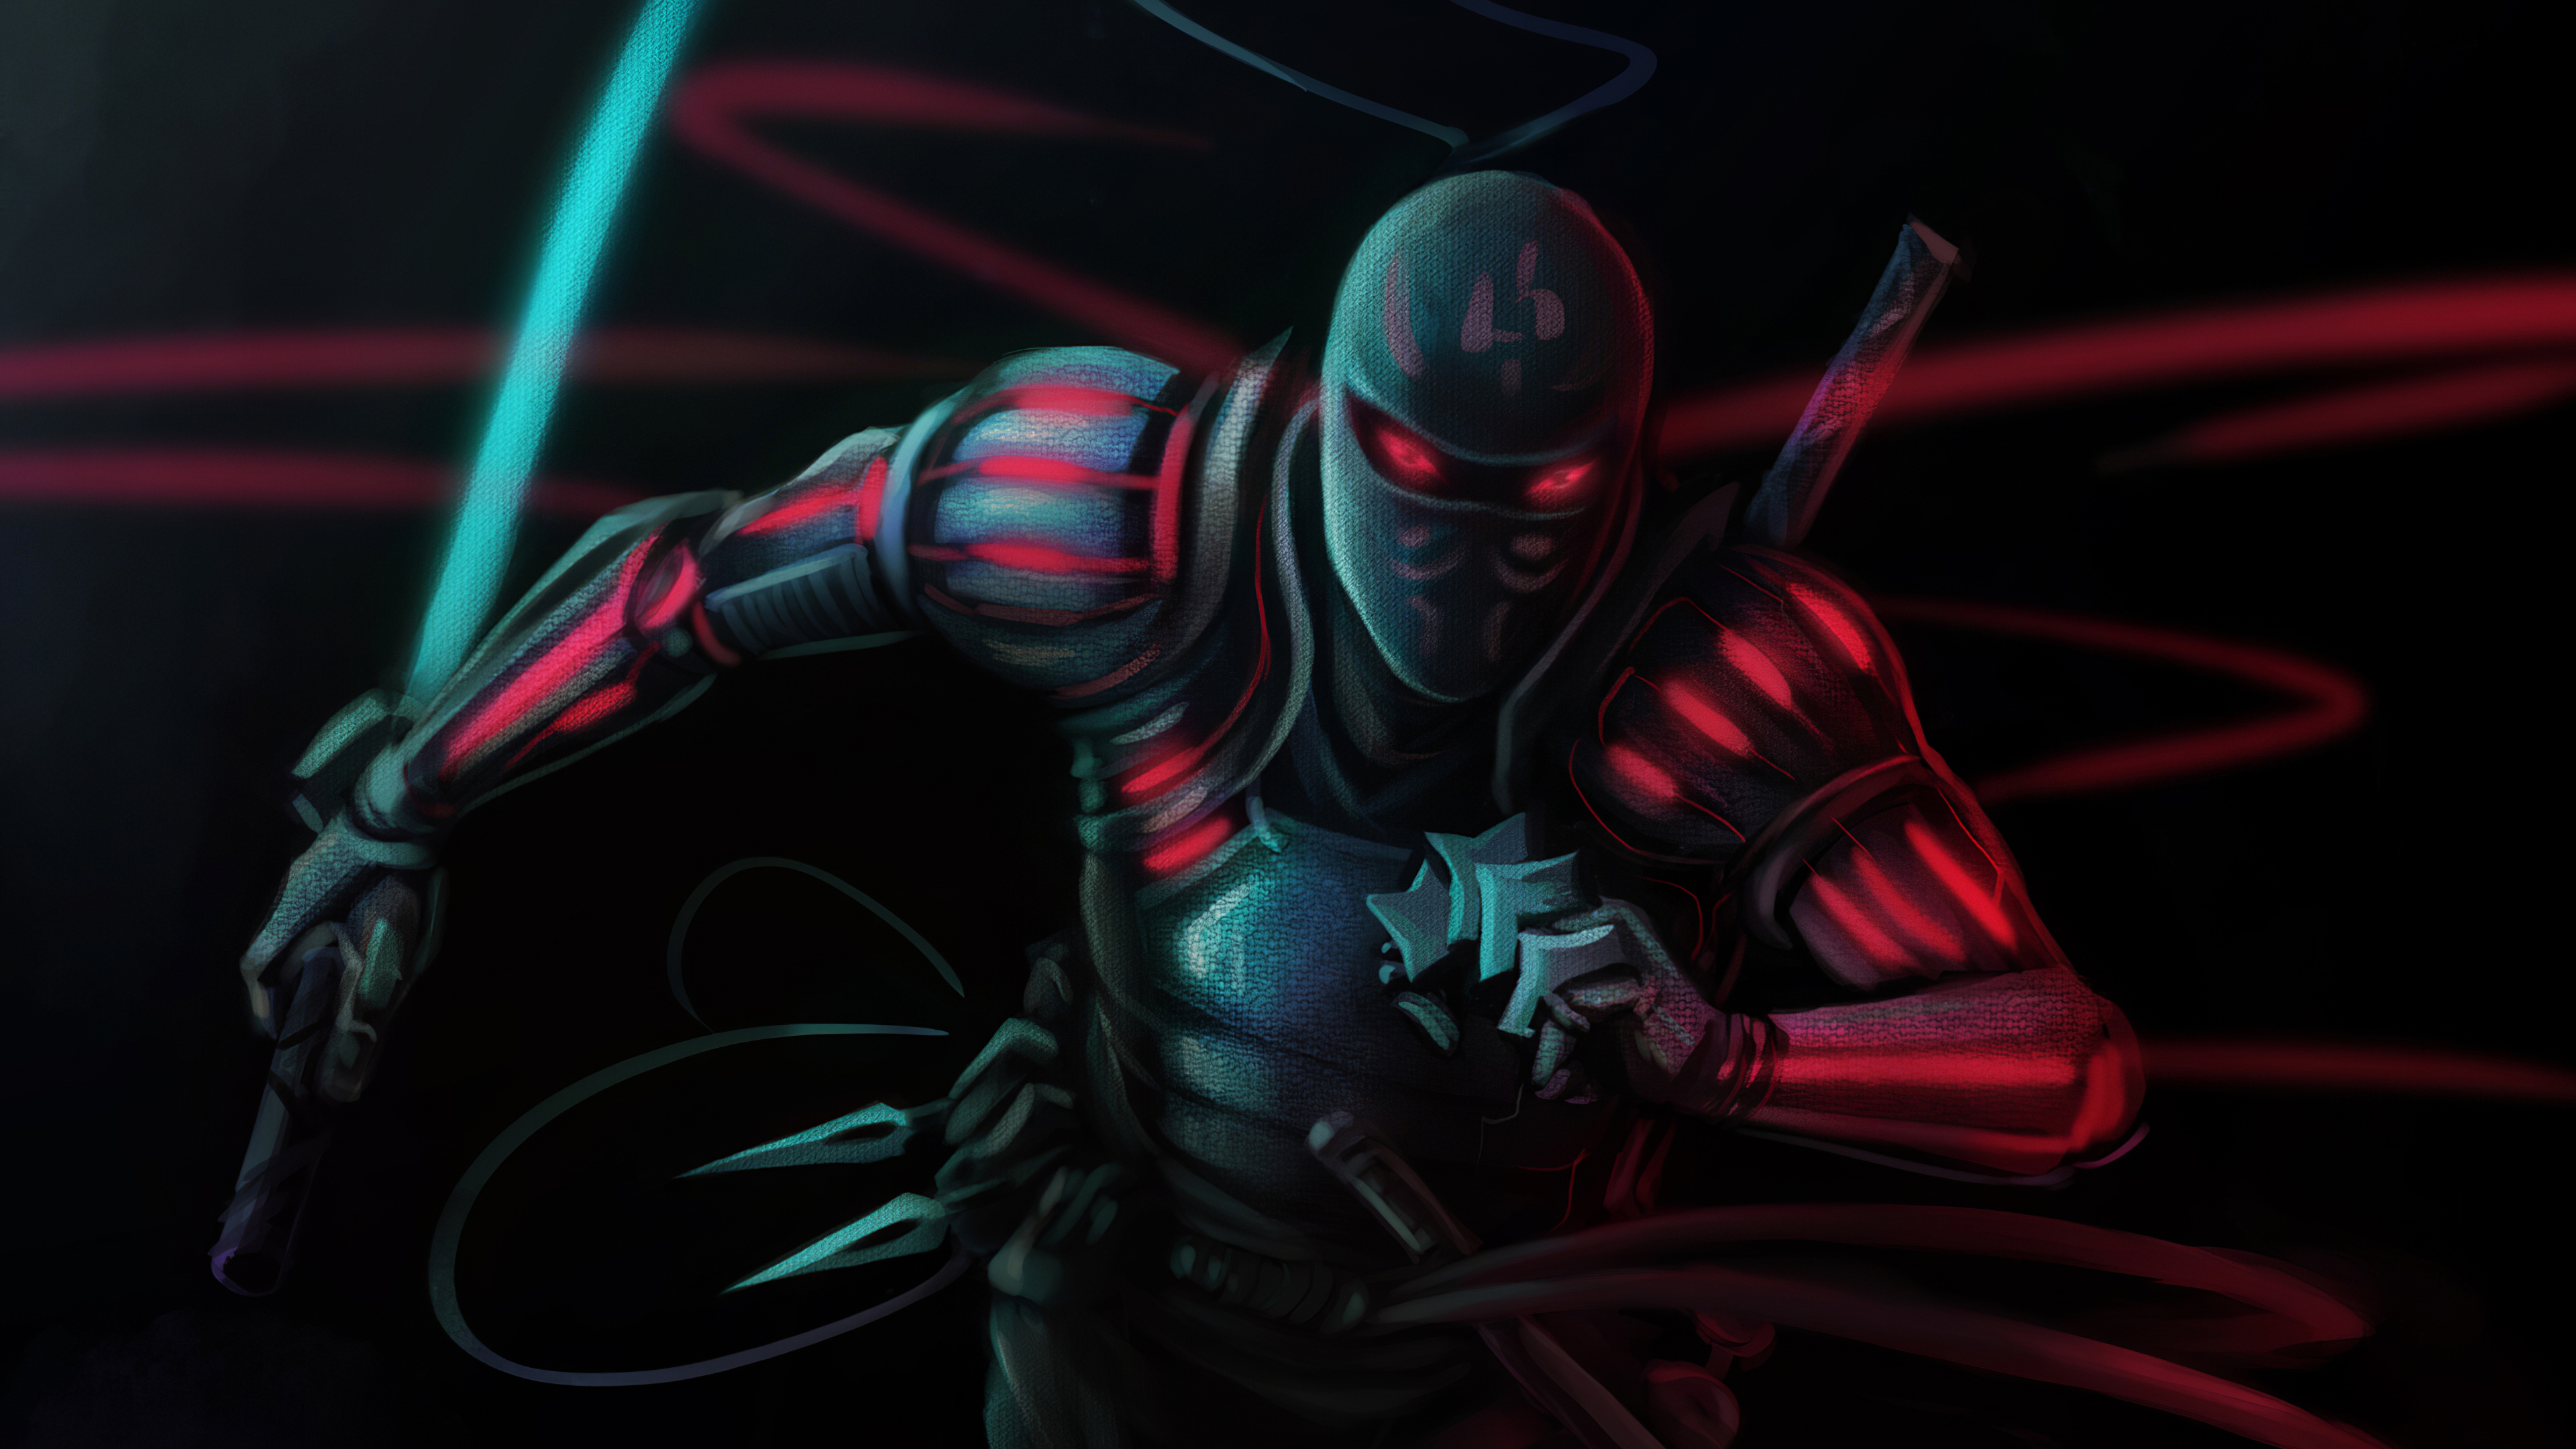 Hig Teck Shinobi 4k Hd Artist 4k Wallpapers Images Backgrounds Photos And Pictures